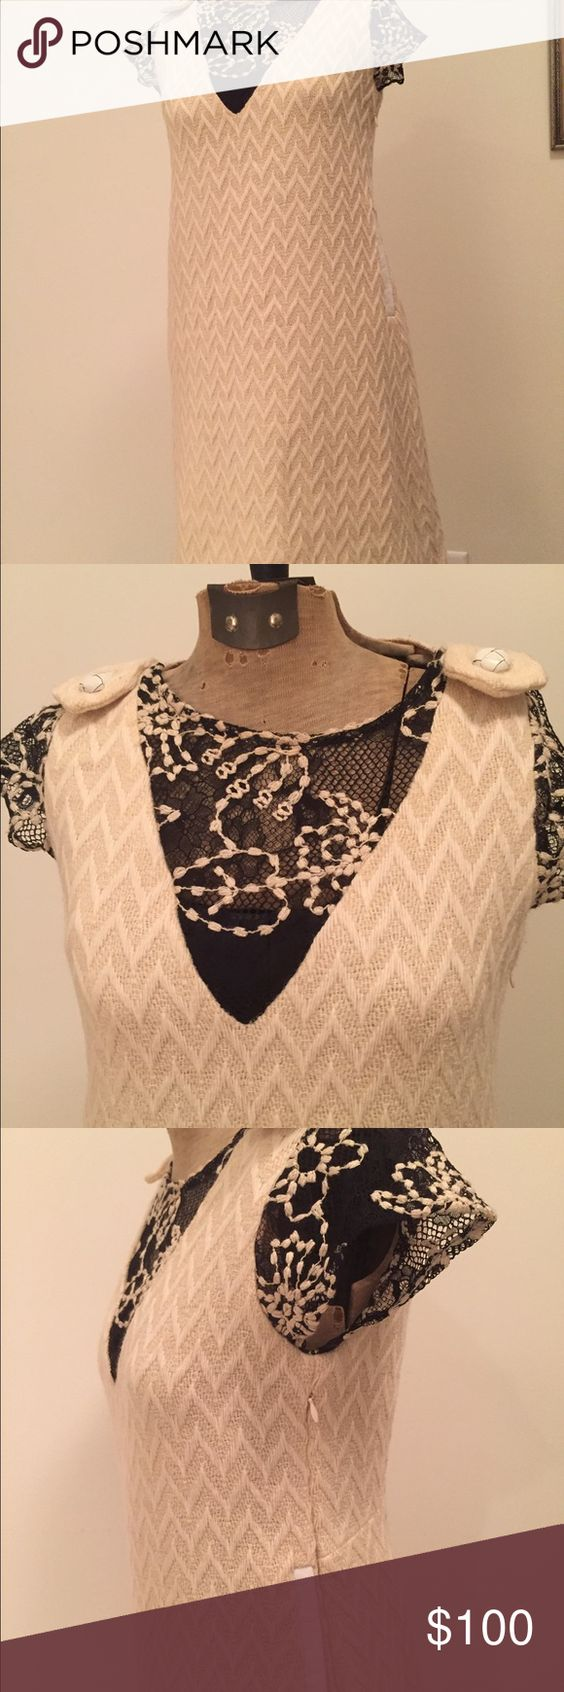 Billy Reid Winter Cream Wool and Black Lace Dress This is a fabulous high end Billy Reid designer dress featuring cream wool, black and metallic gold lace sleeves, leather accents on pockets and buttons on shoulders. Has a silk lining and a metal zipper on side. Billy Reid Dresses Mini